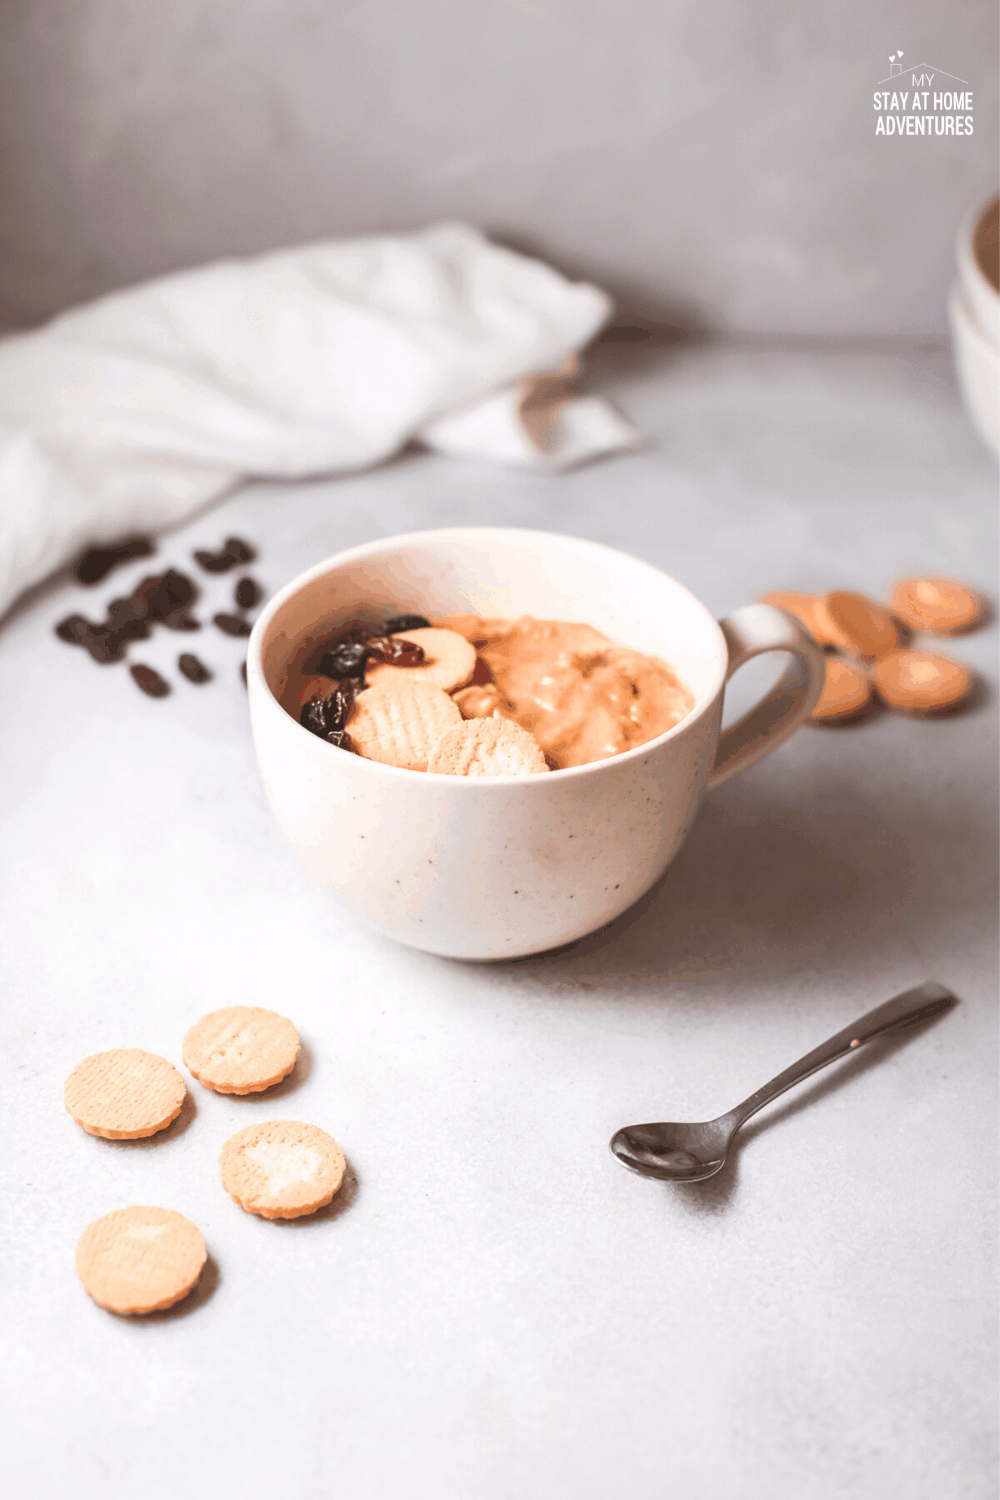 Habichuelas con Dulce is a Dominican staple popular around Easter. This recipe contains beans, coconut milk, and condensed milk. via @mystayathome